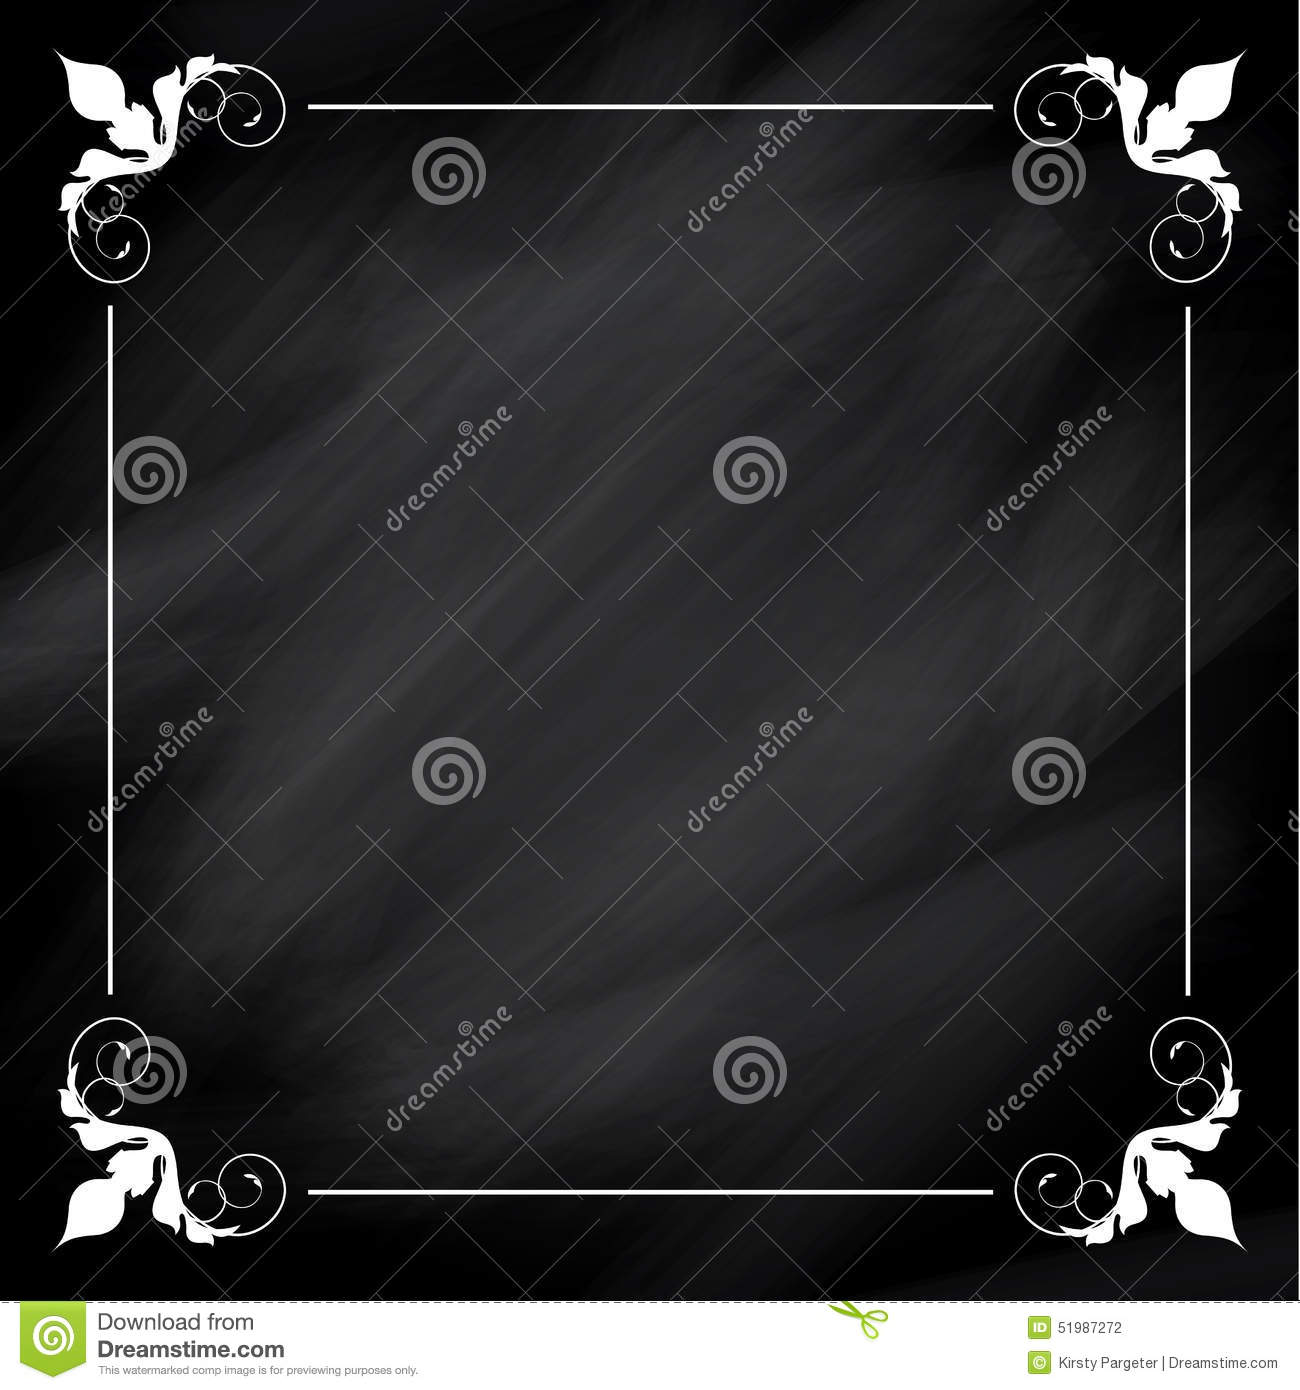 Chalkboard Background With A Decorative Border